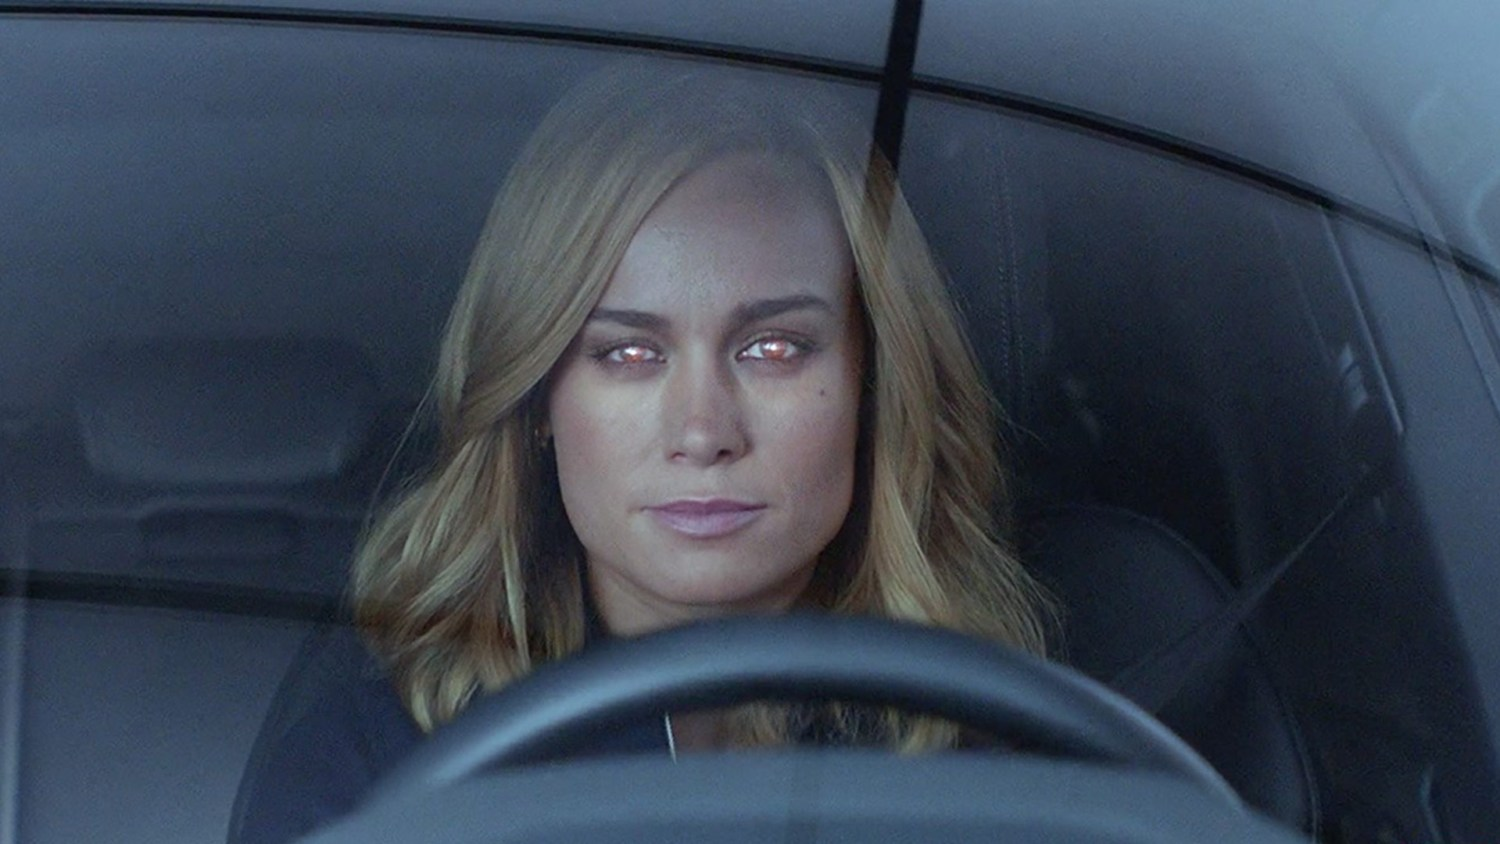 Captain Marvel meets the Audi e-tron SUV